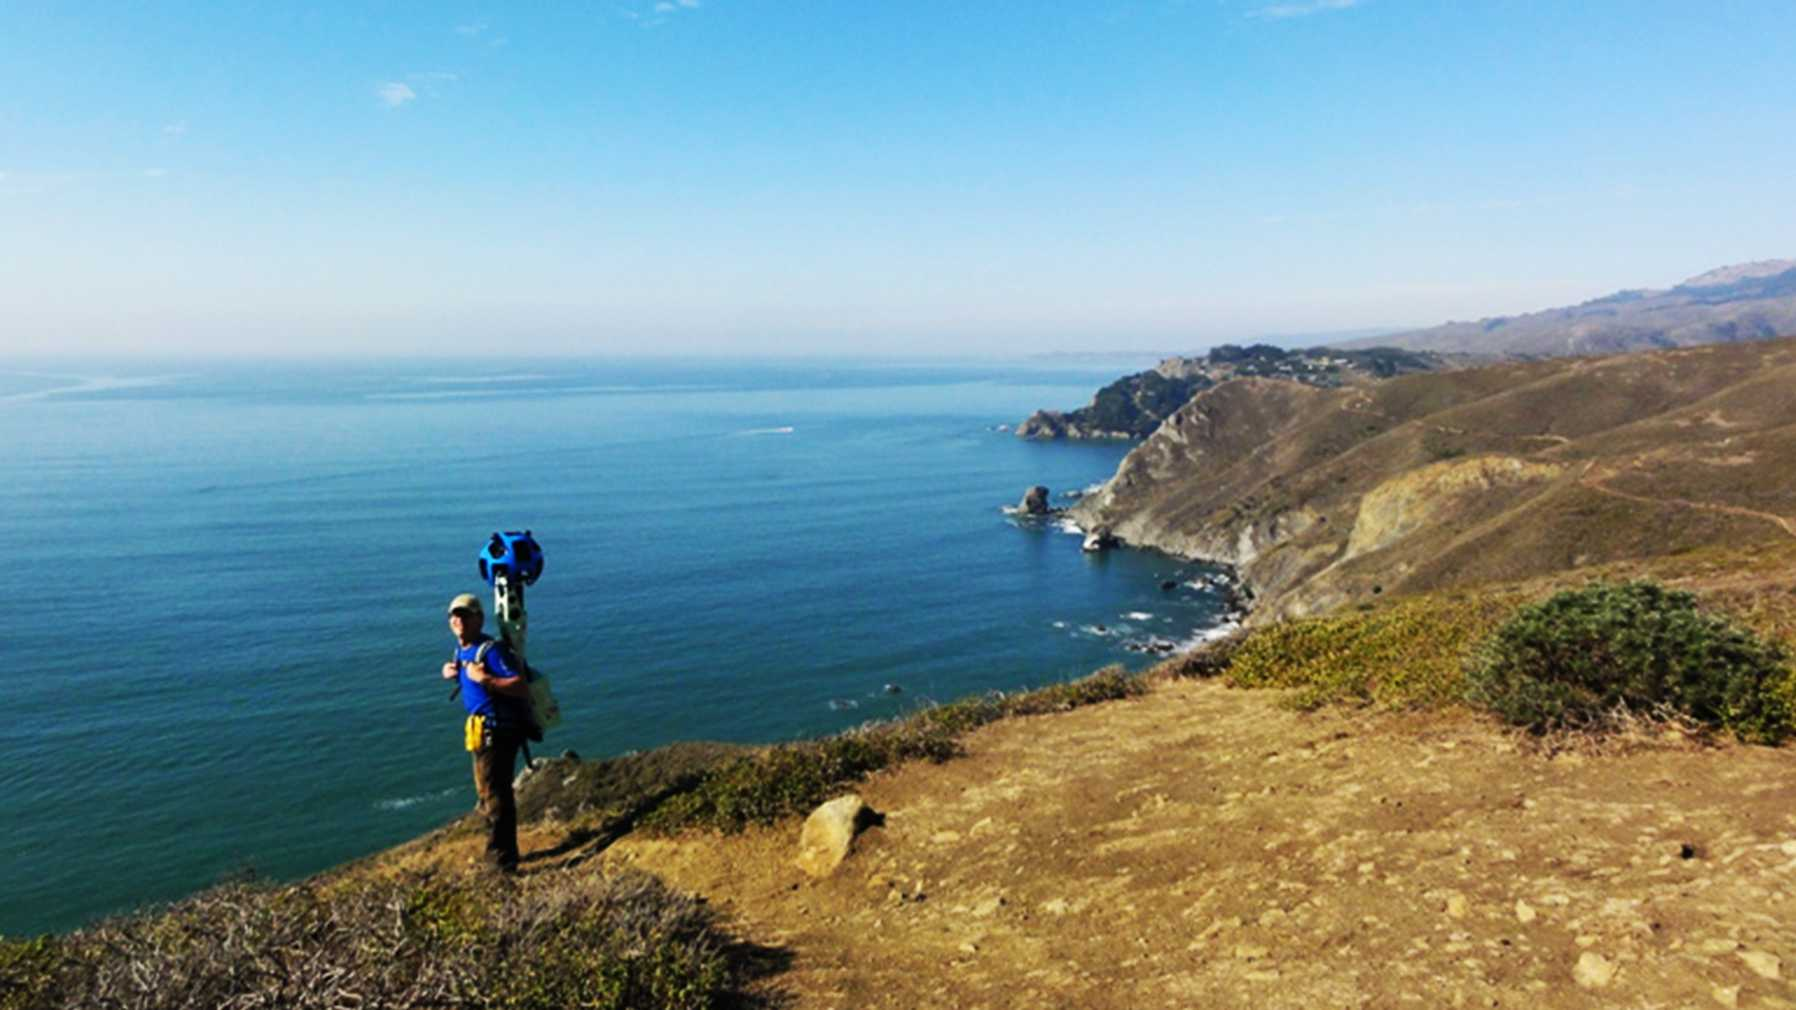 A Google Trekker is seen mapping Big Sur.